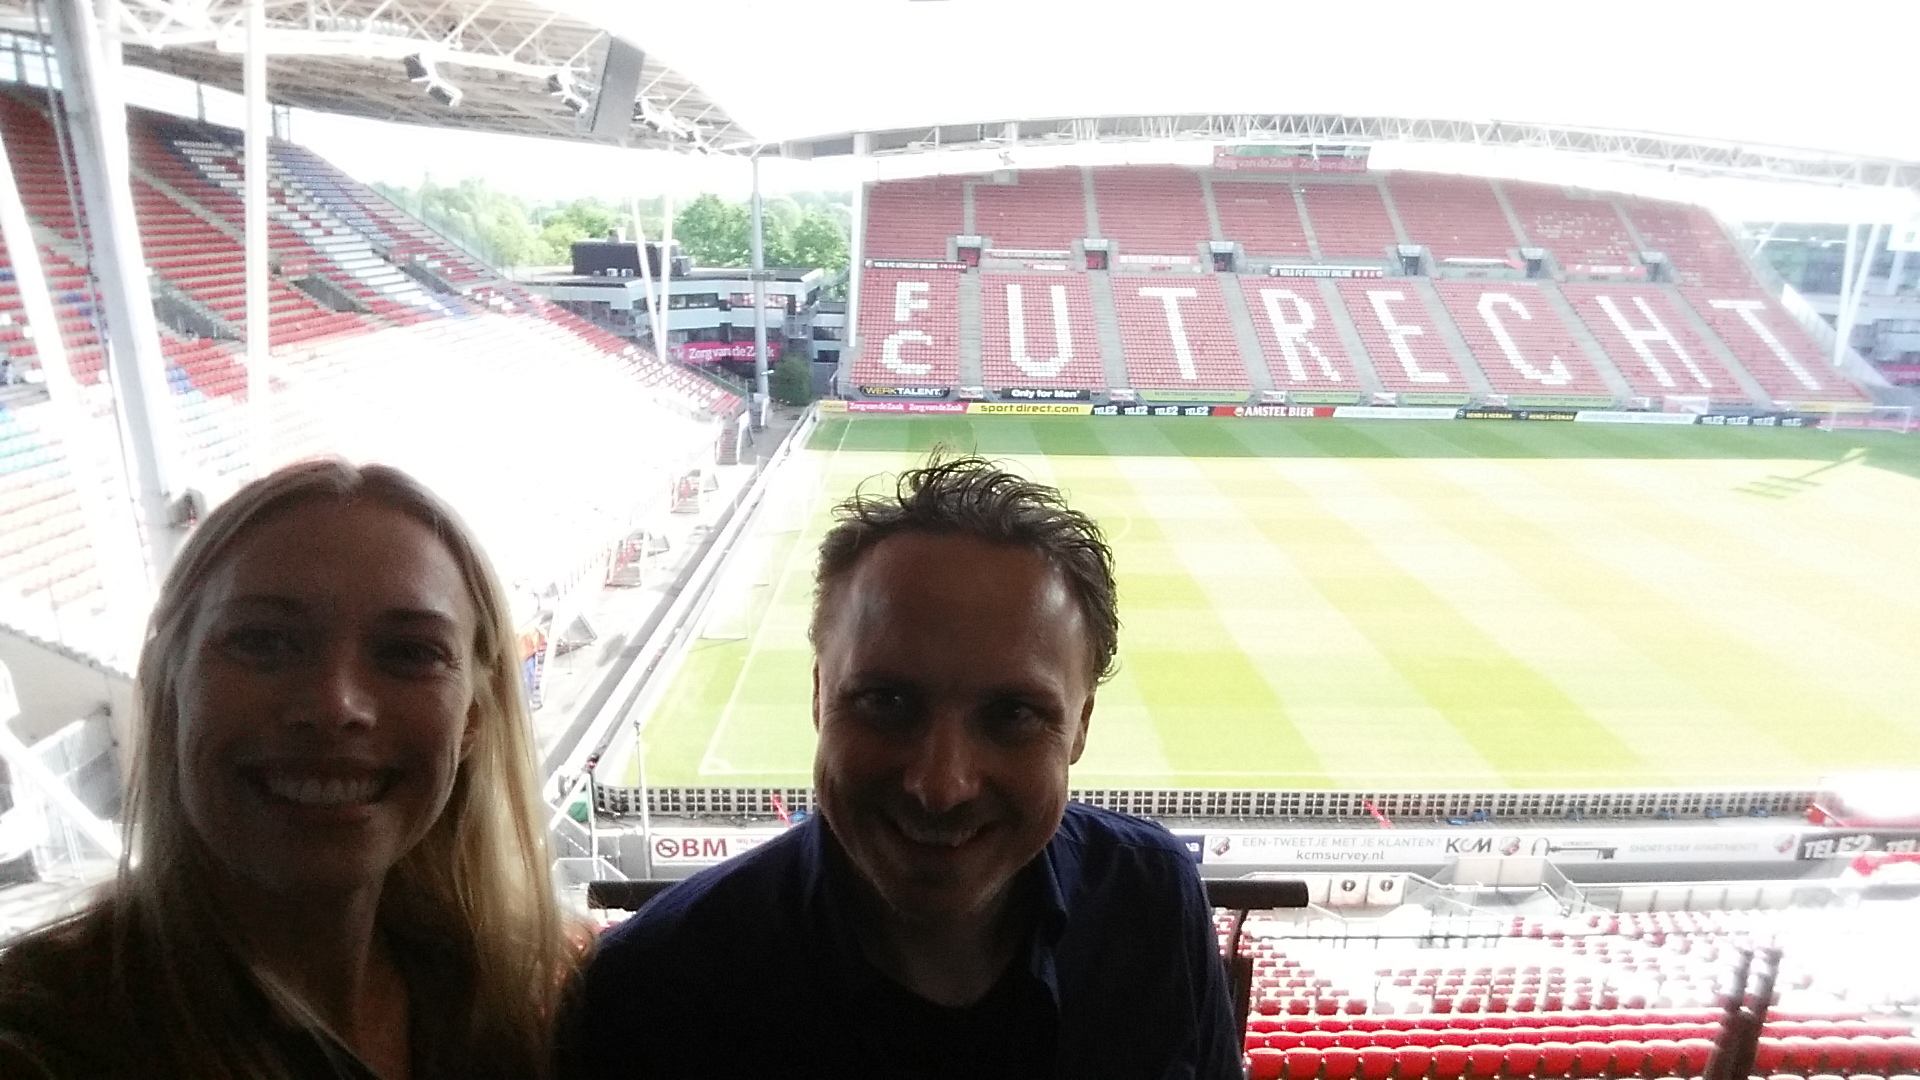 20180517 172446 - Presentation & Workshop Strategic Days 2018 HU @ Galgenwaard Stadion